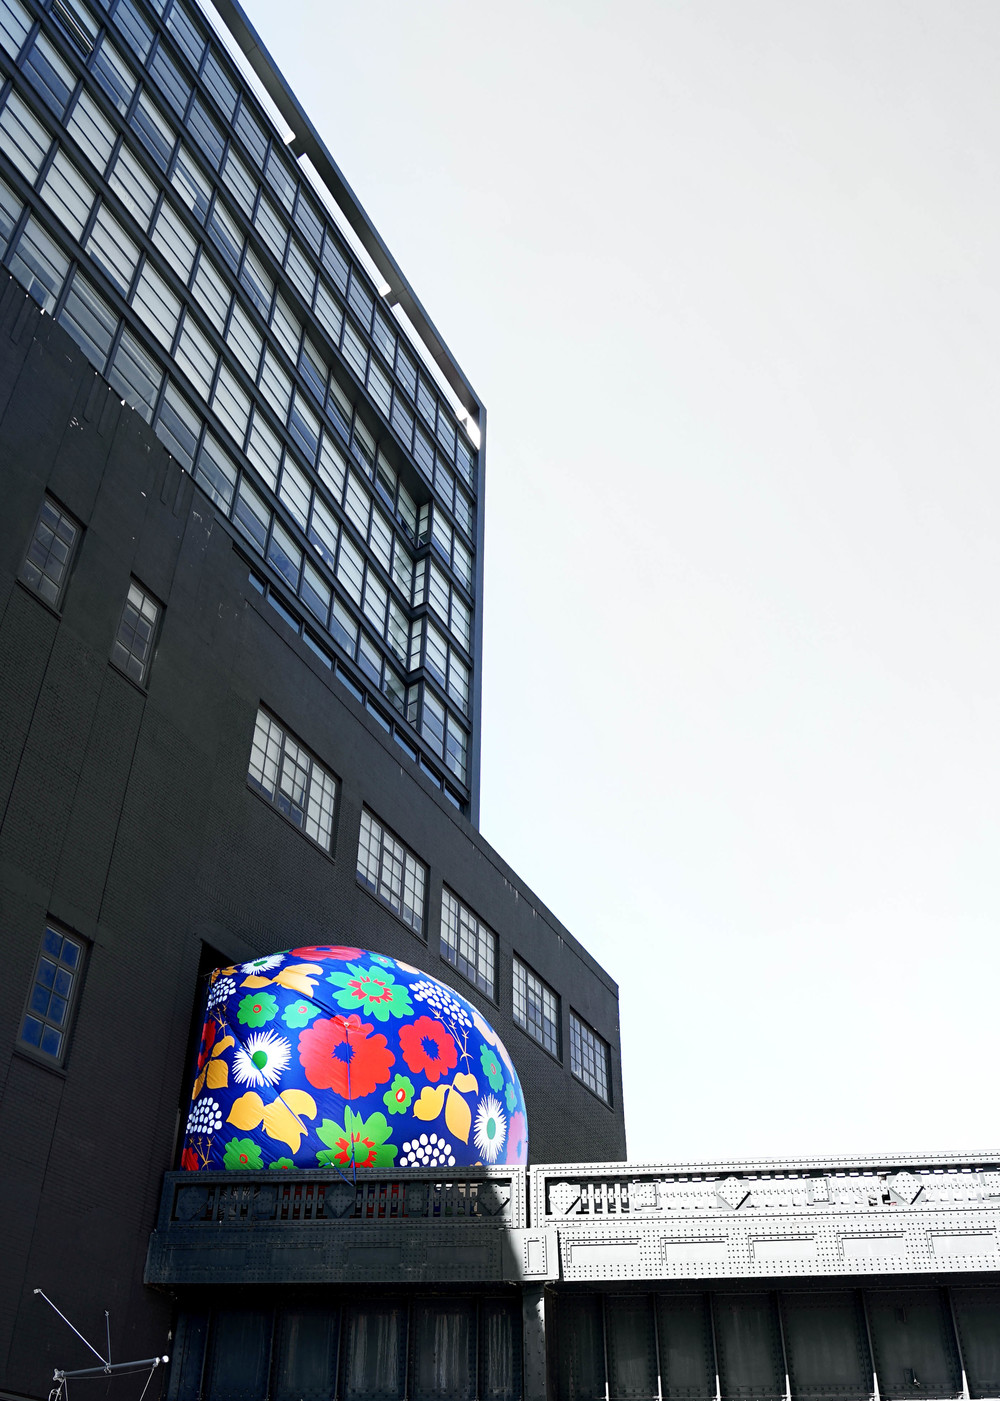 Inside Kukkatori Swing, the name of a Marimekko pattern, are six swings replete with slow-motion video for social sharing.